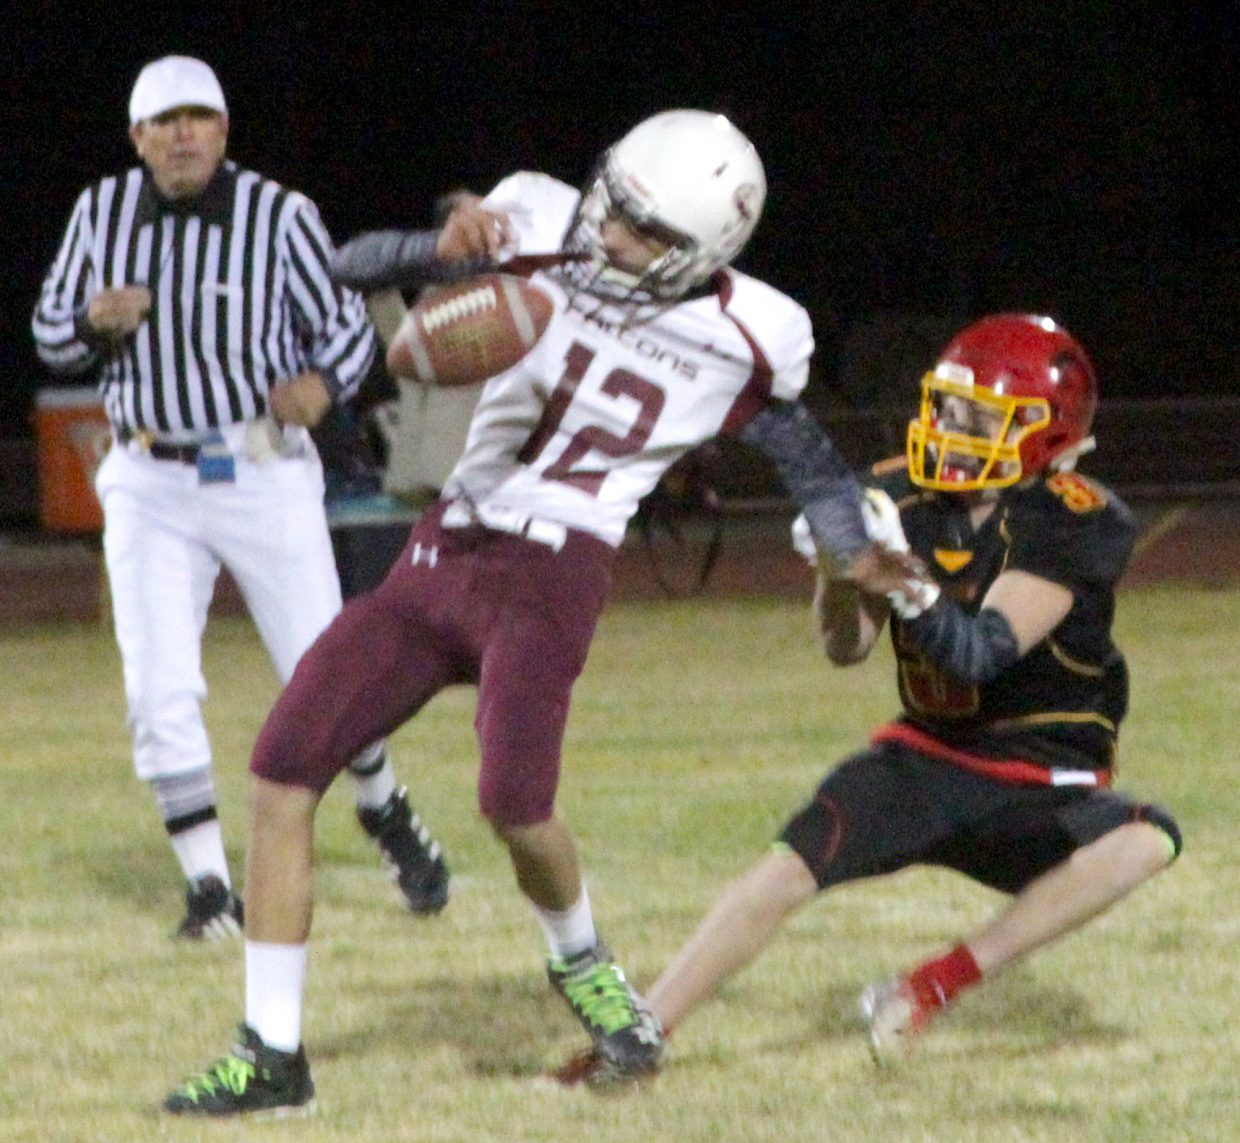 Whittell senior Trent Dingman sacks Sierra Lutheran quarterback Makes Berger and forces a fumble.